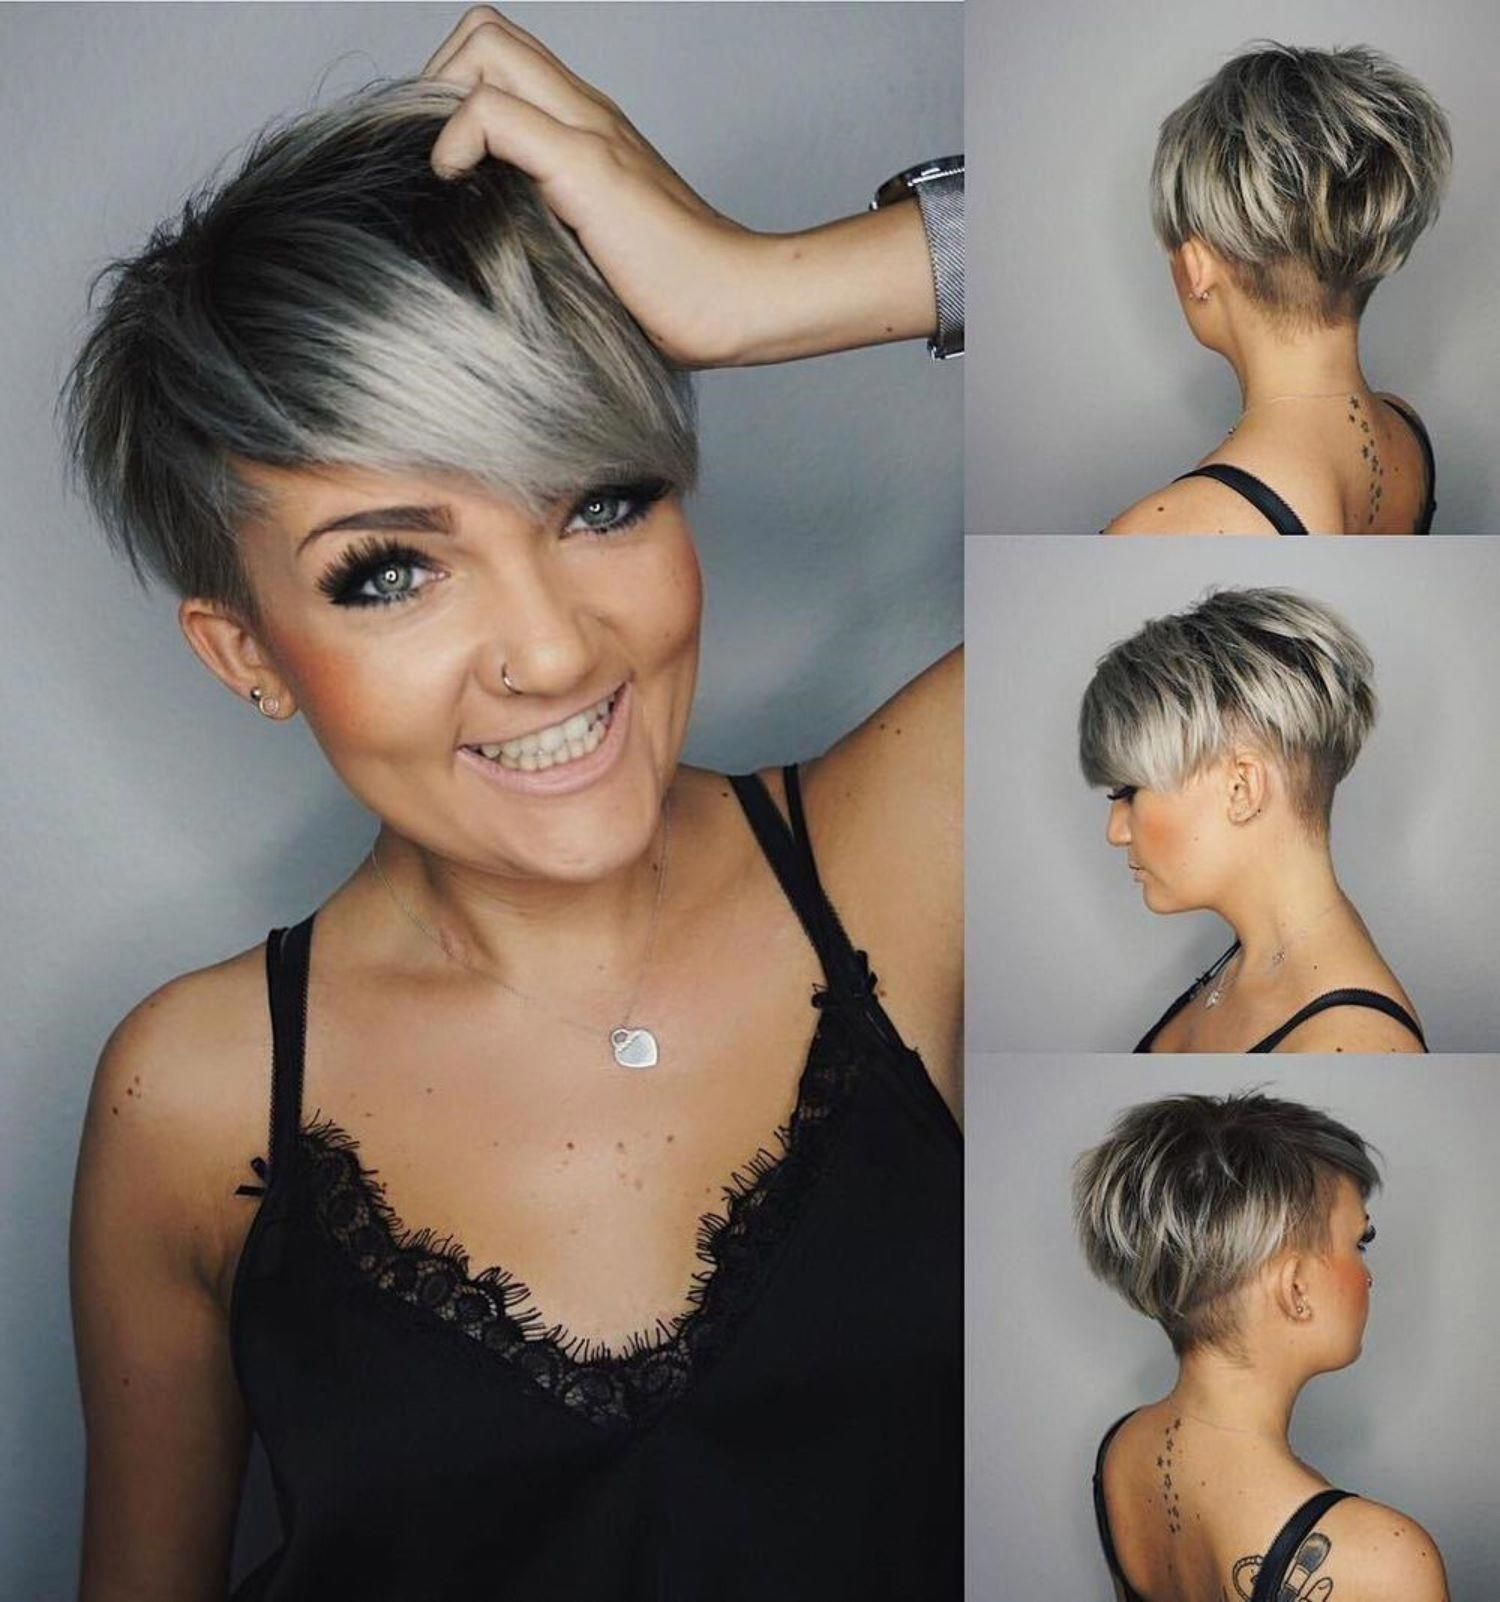 70 Short Shaggy, Spiky, Edgy Pixie Cuts and Hairst